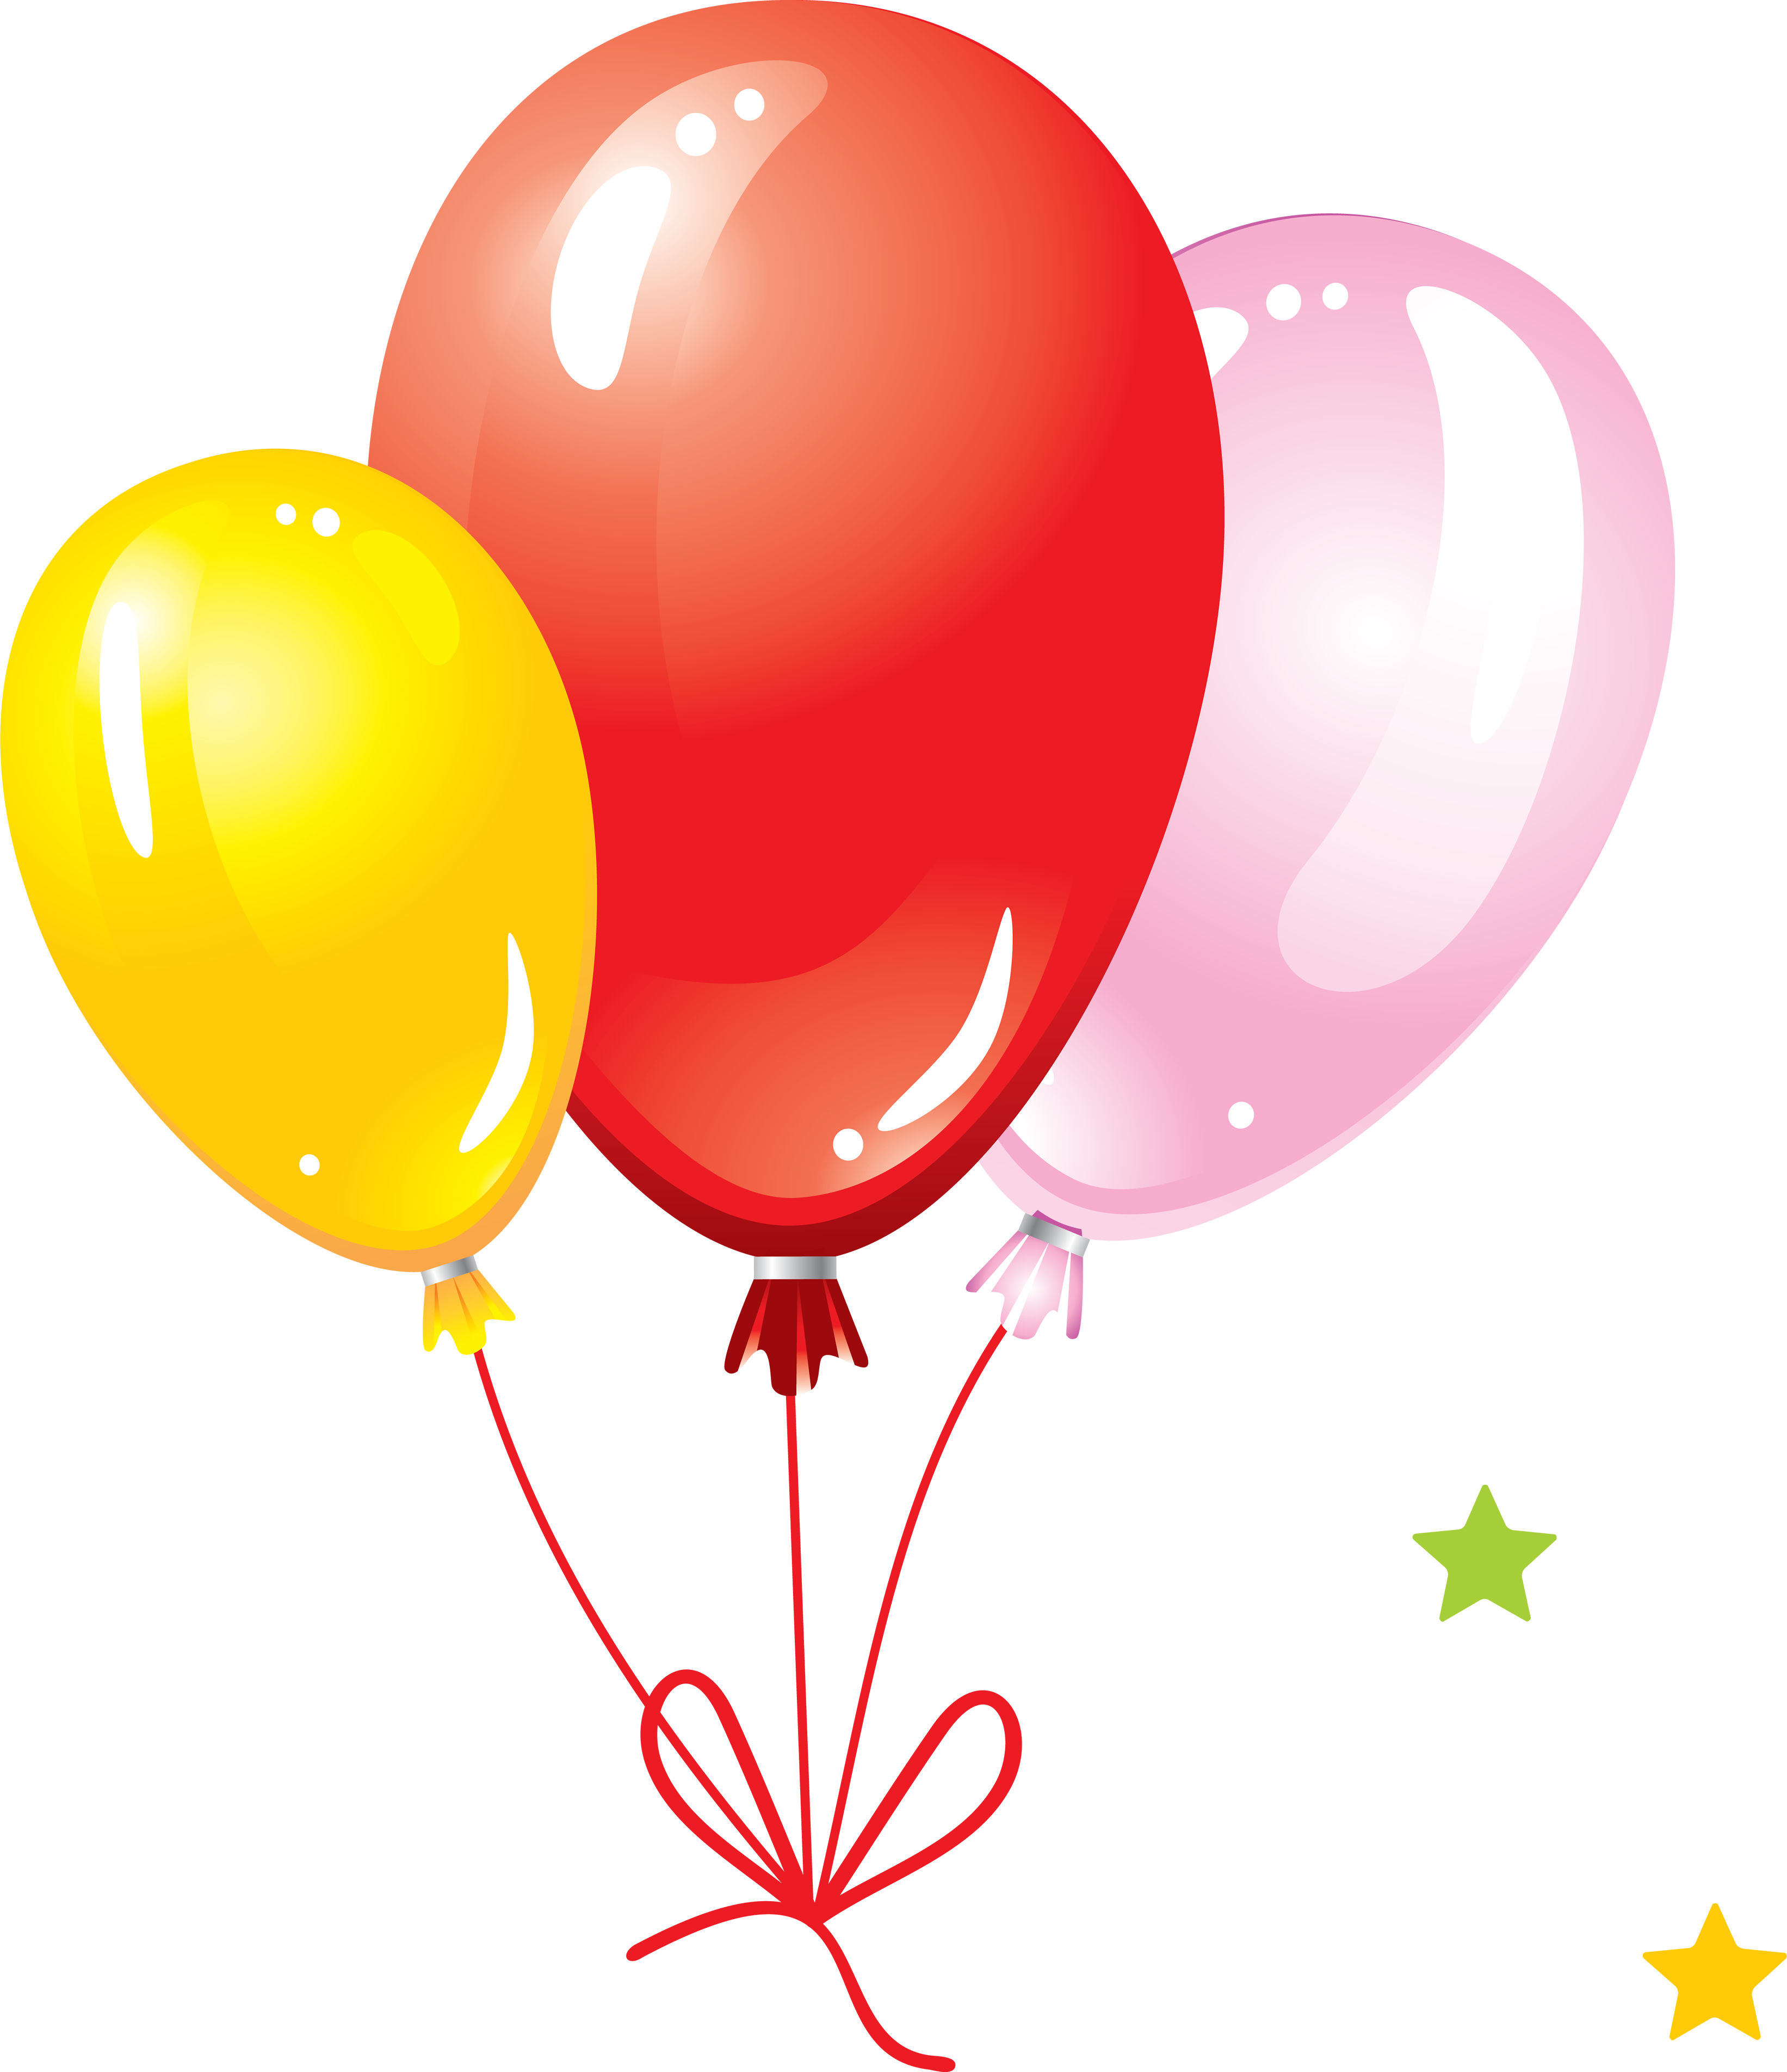 Download Png Image Balloon Free Balloons clipart free image.